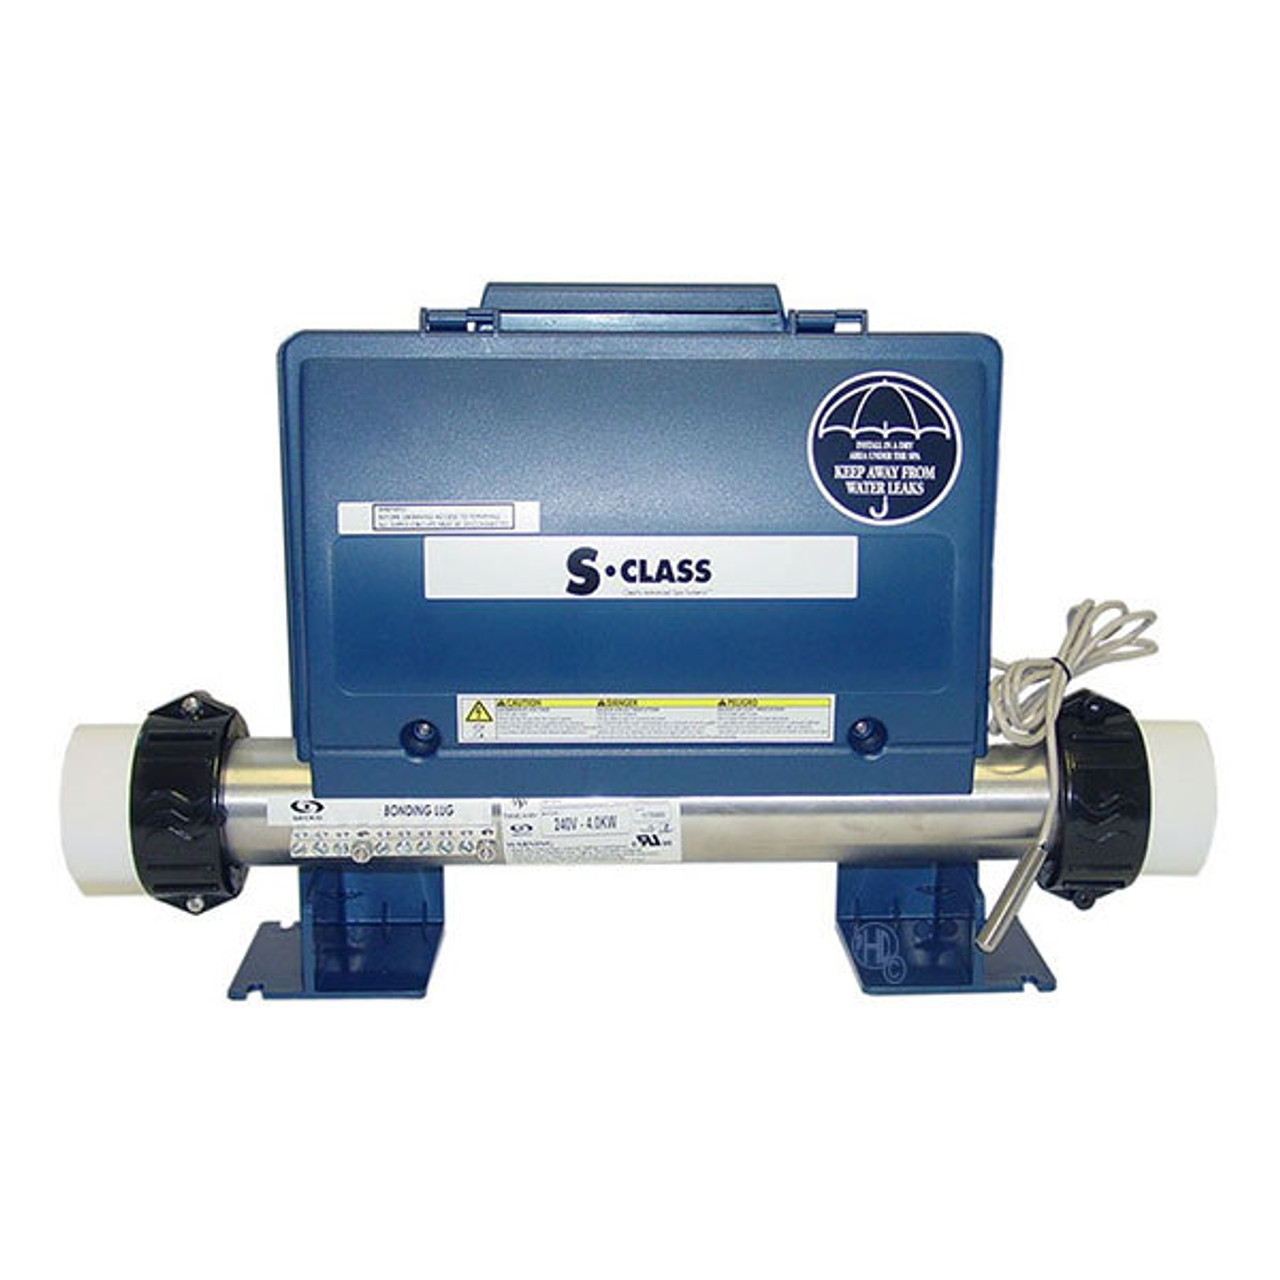 hight resolution of gecko s class spa control pack 4kw heater 2 pumps circ pump